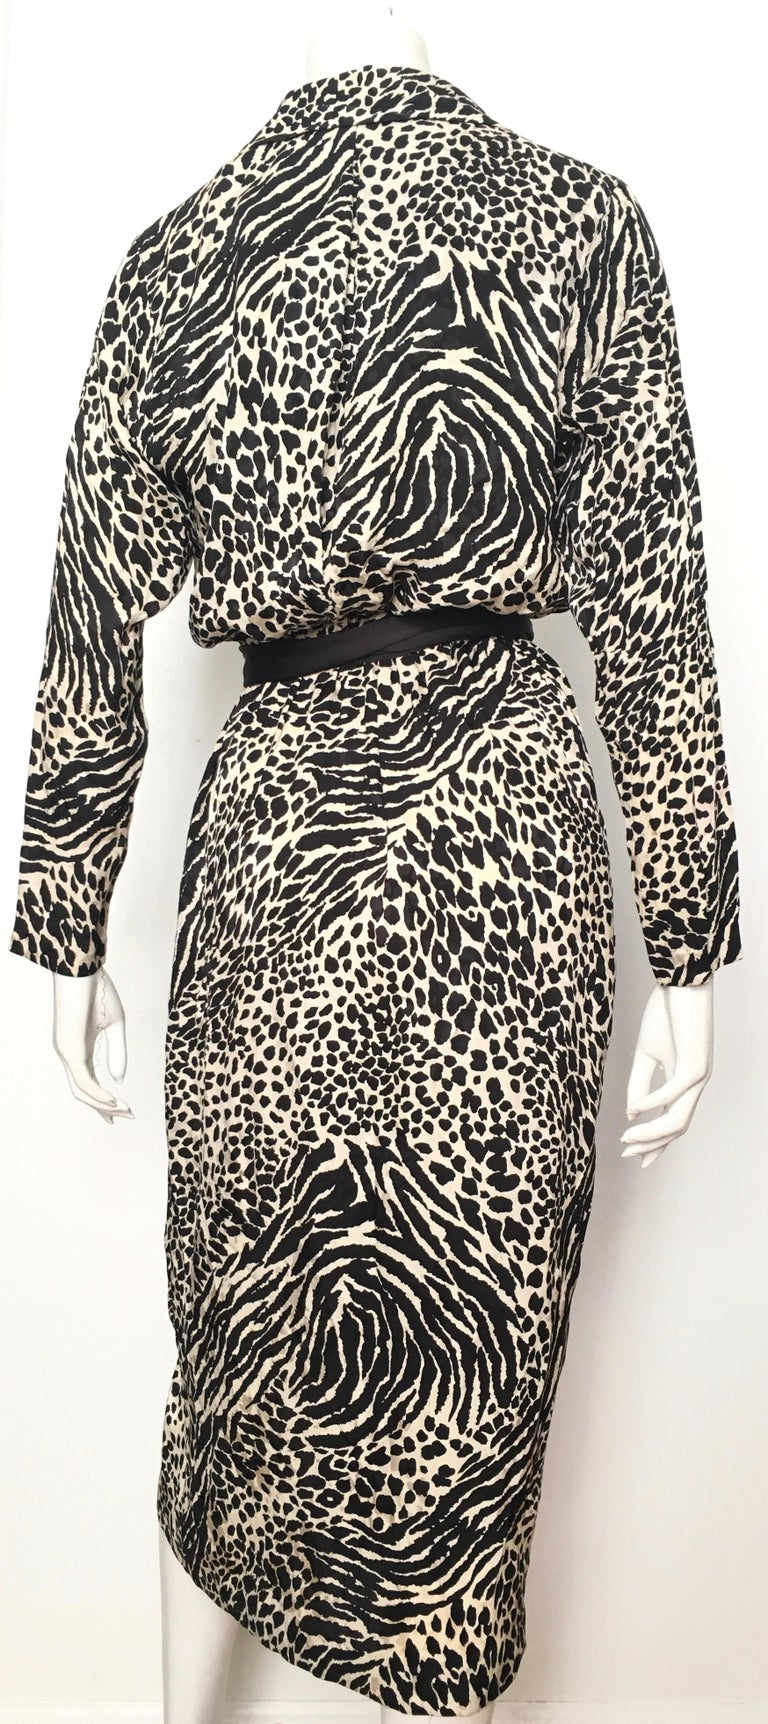 Geoffrey Beene for Lillie Rubin 1980 Animal Print Silk Dress Size 6. For Sale 1